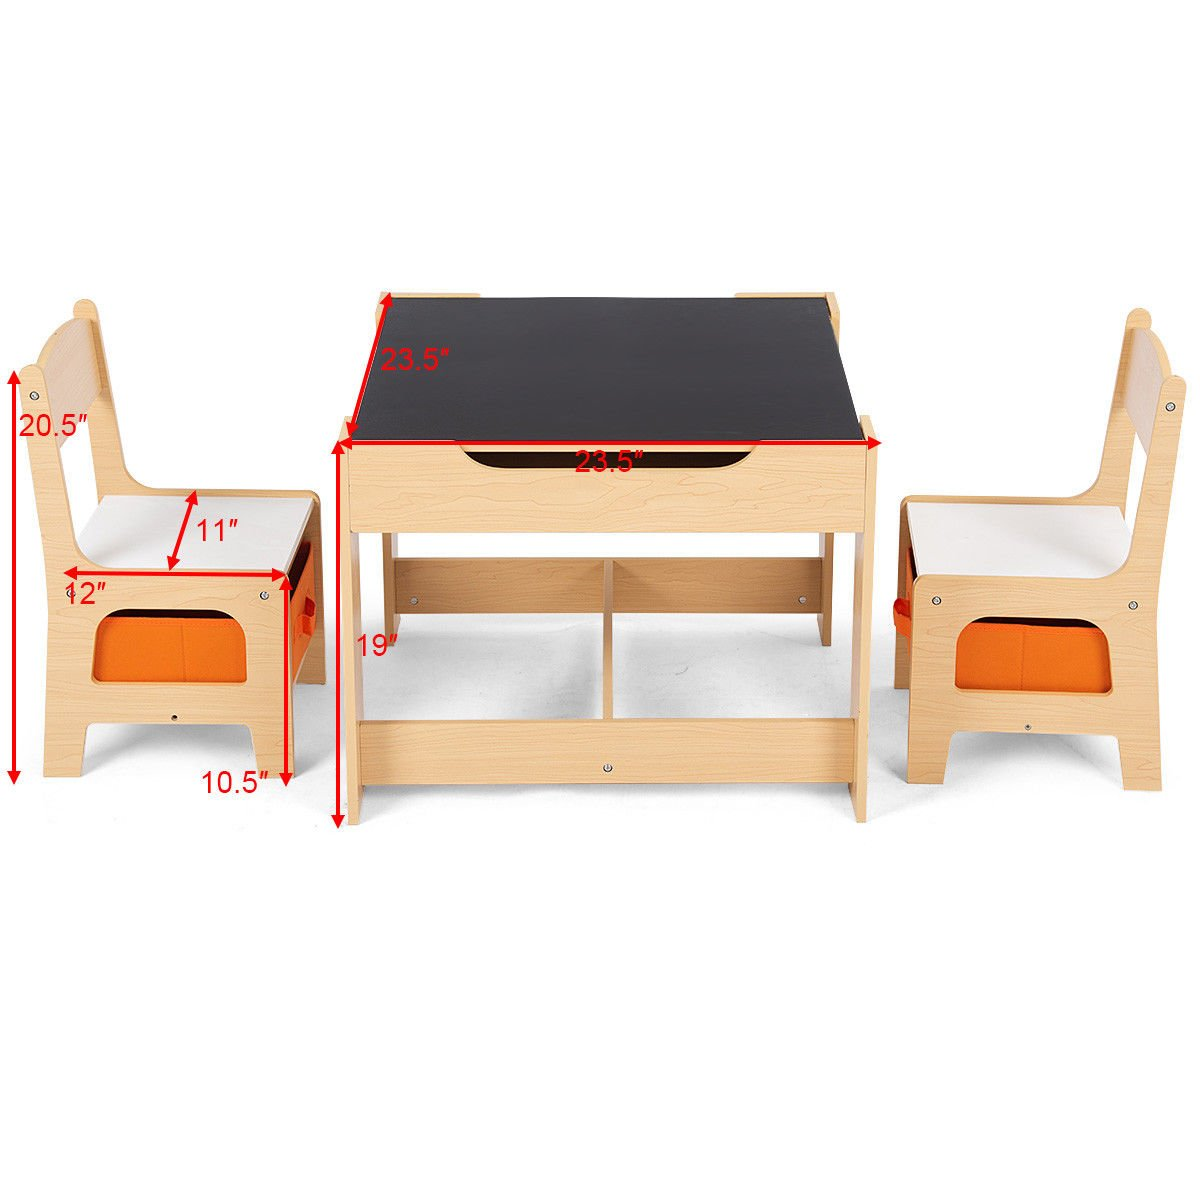 Costzon Kids Table and 2 Chairs Set, 3 in 1 Wooden Table Furniture for Toddlers Drawing, Reading, Train, Art Playroom, Activity Table Desk Sets (Convertible Set with Storage Space) by Costzon (Image #7)